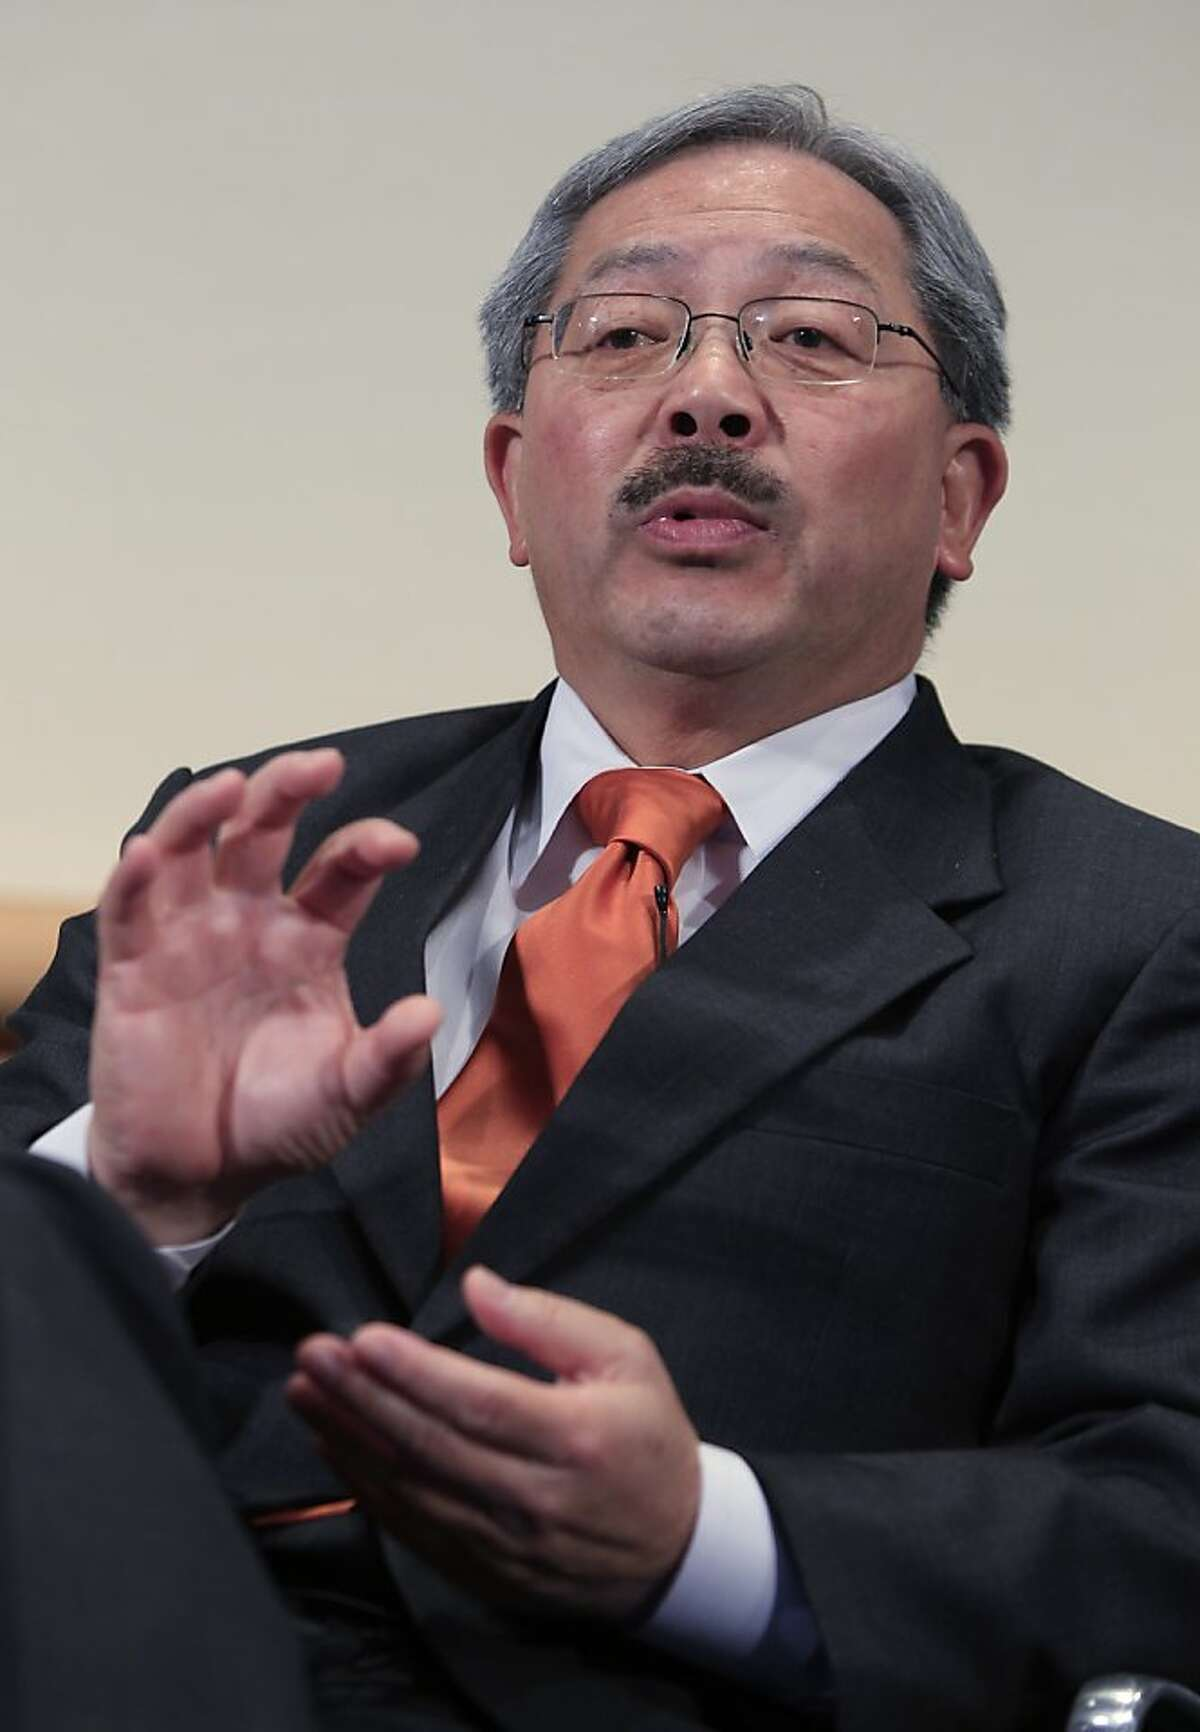 San Francisco Mayor Ed Lee gestures during the 8th Annual CEO Summit at IBM offices in San Jose, Calif., Friday, April 22, 2011.